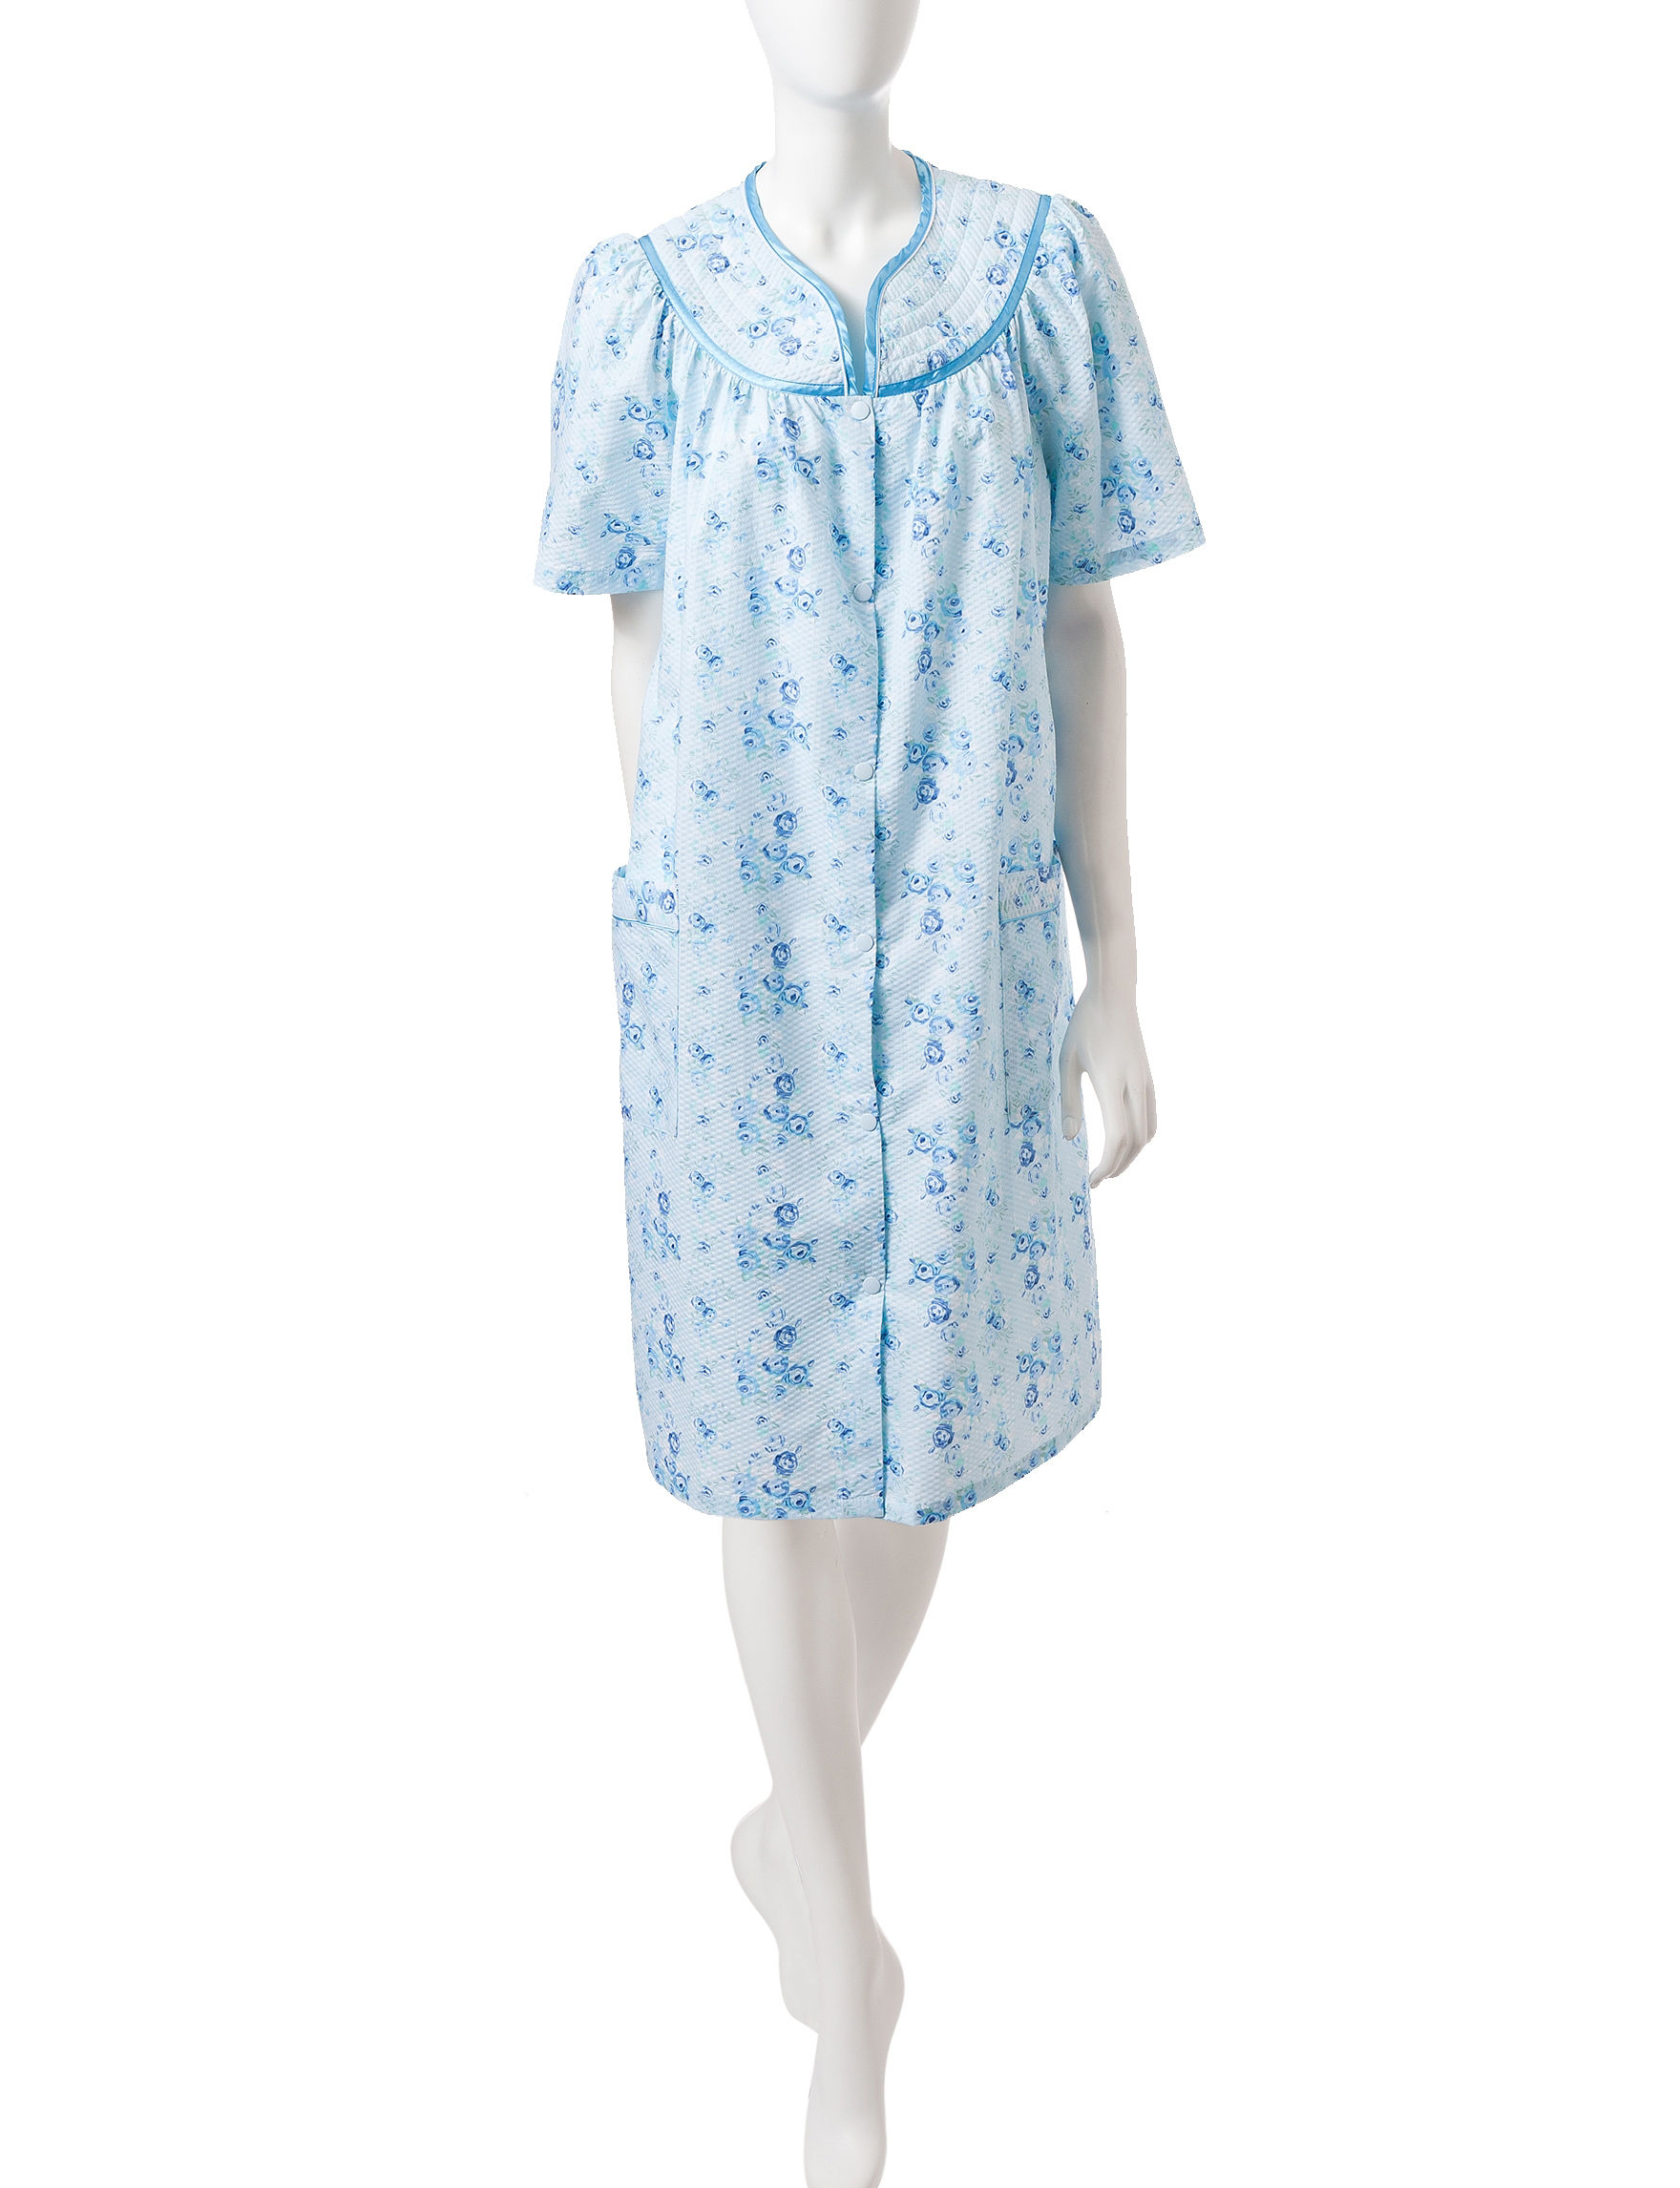 Jasmine Rose Blue Floral Robes, Wraps & Dusters